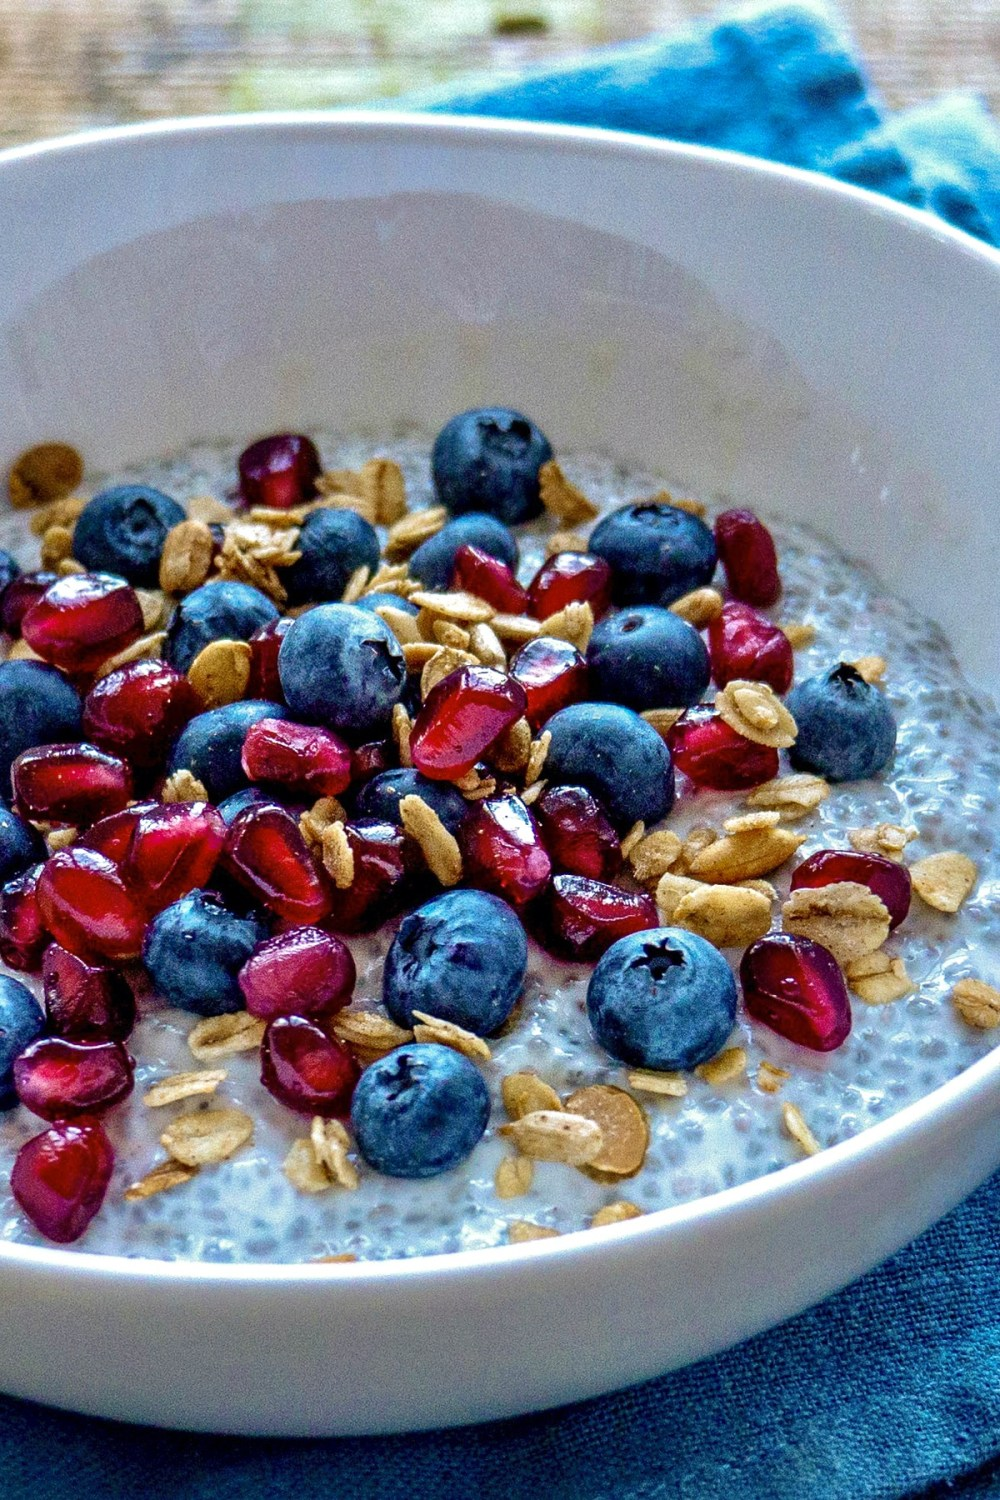 This low-sugar alternative to the popular acai bowls takes a just few minutes to make and offers a deliciously filling start to the day.The concept is similar to stovetop oatmeal or overnight oats, as you can top and customize to taste.